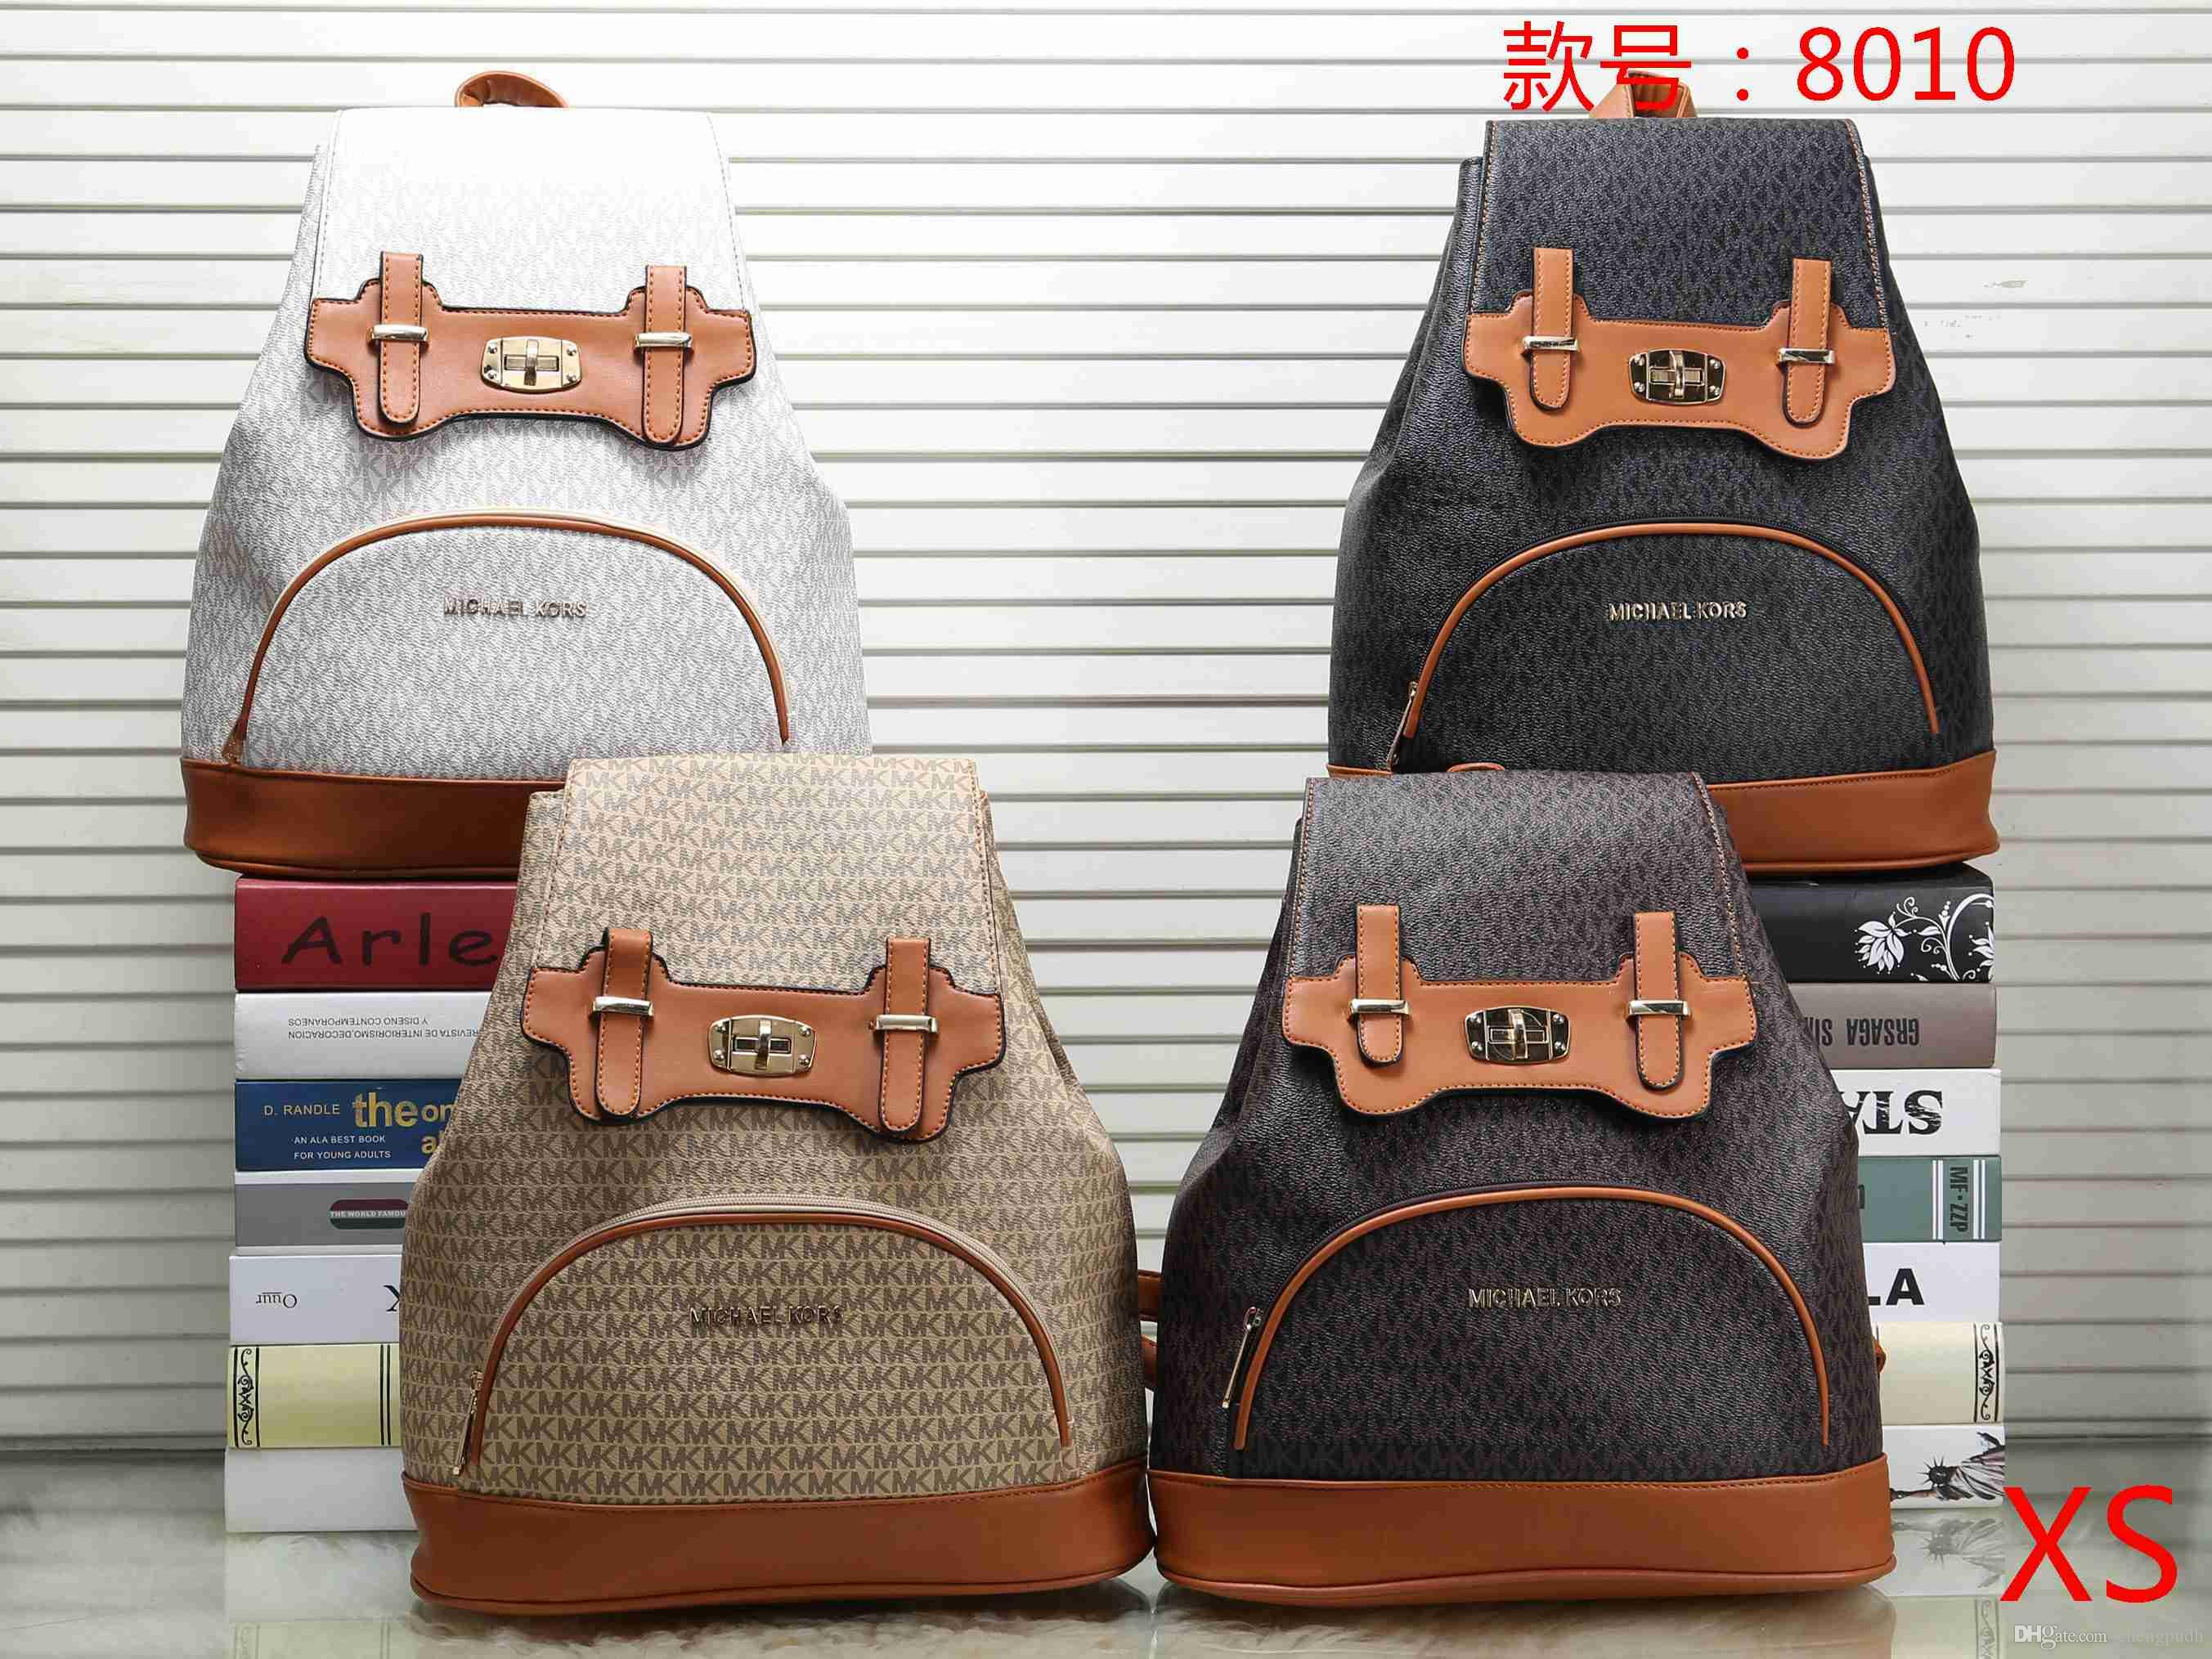 Best price High Quality women Ladies Single handbag tote Shoulder backpack bag purse wallet--8010